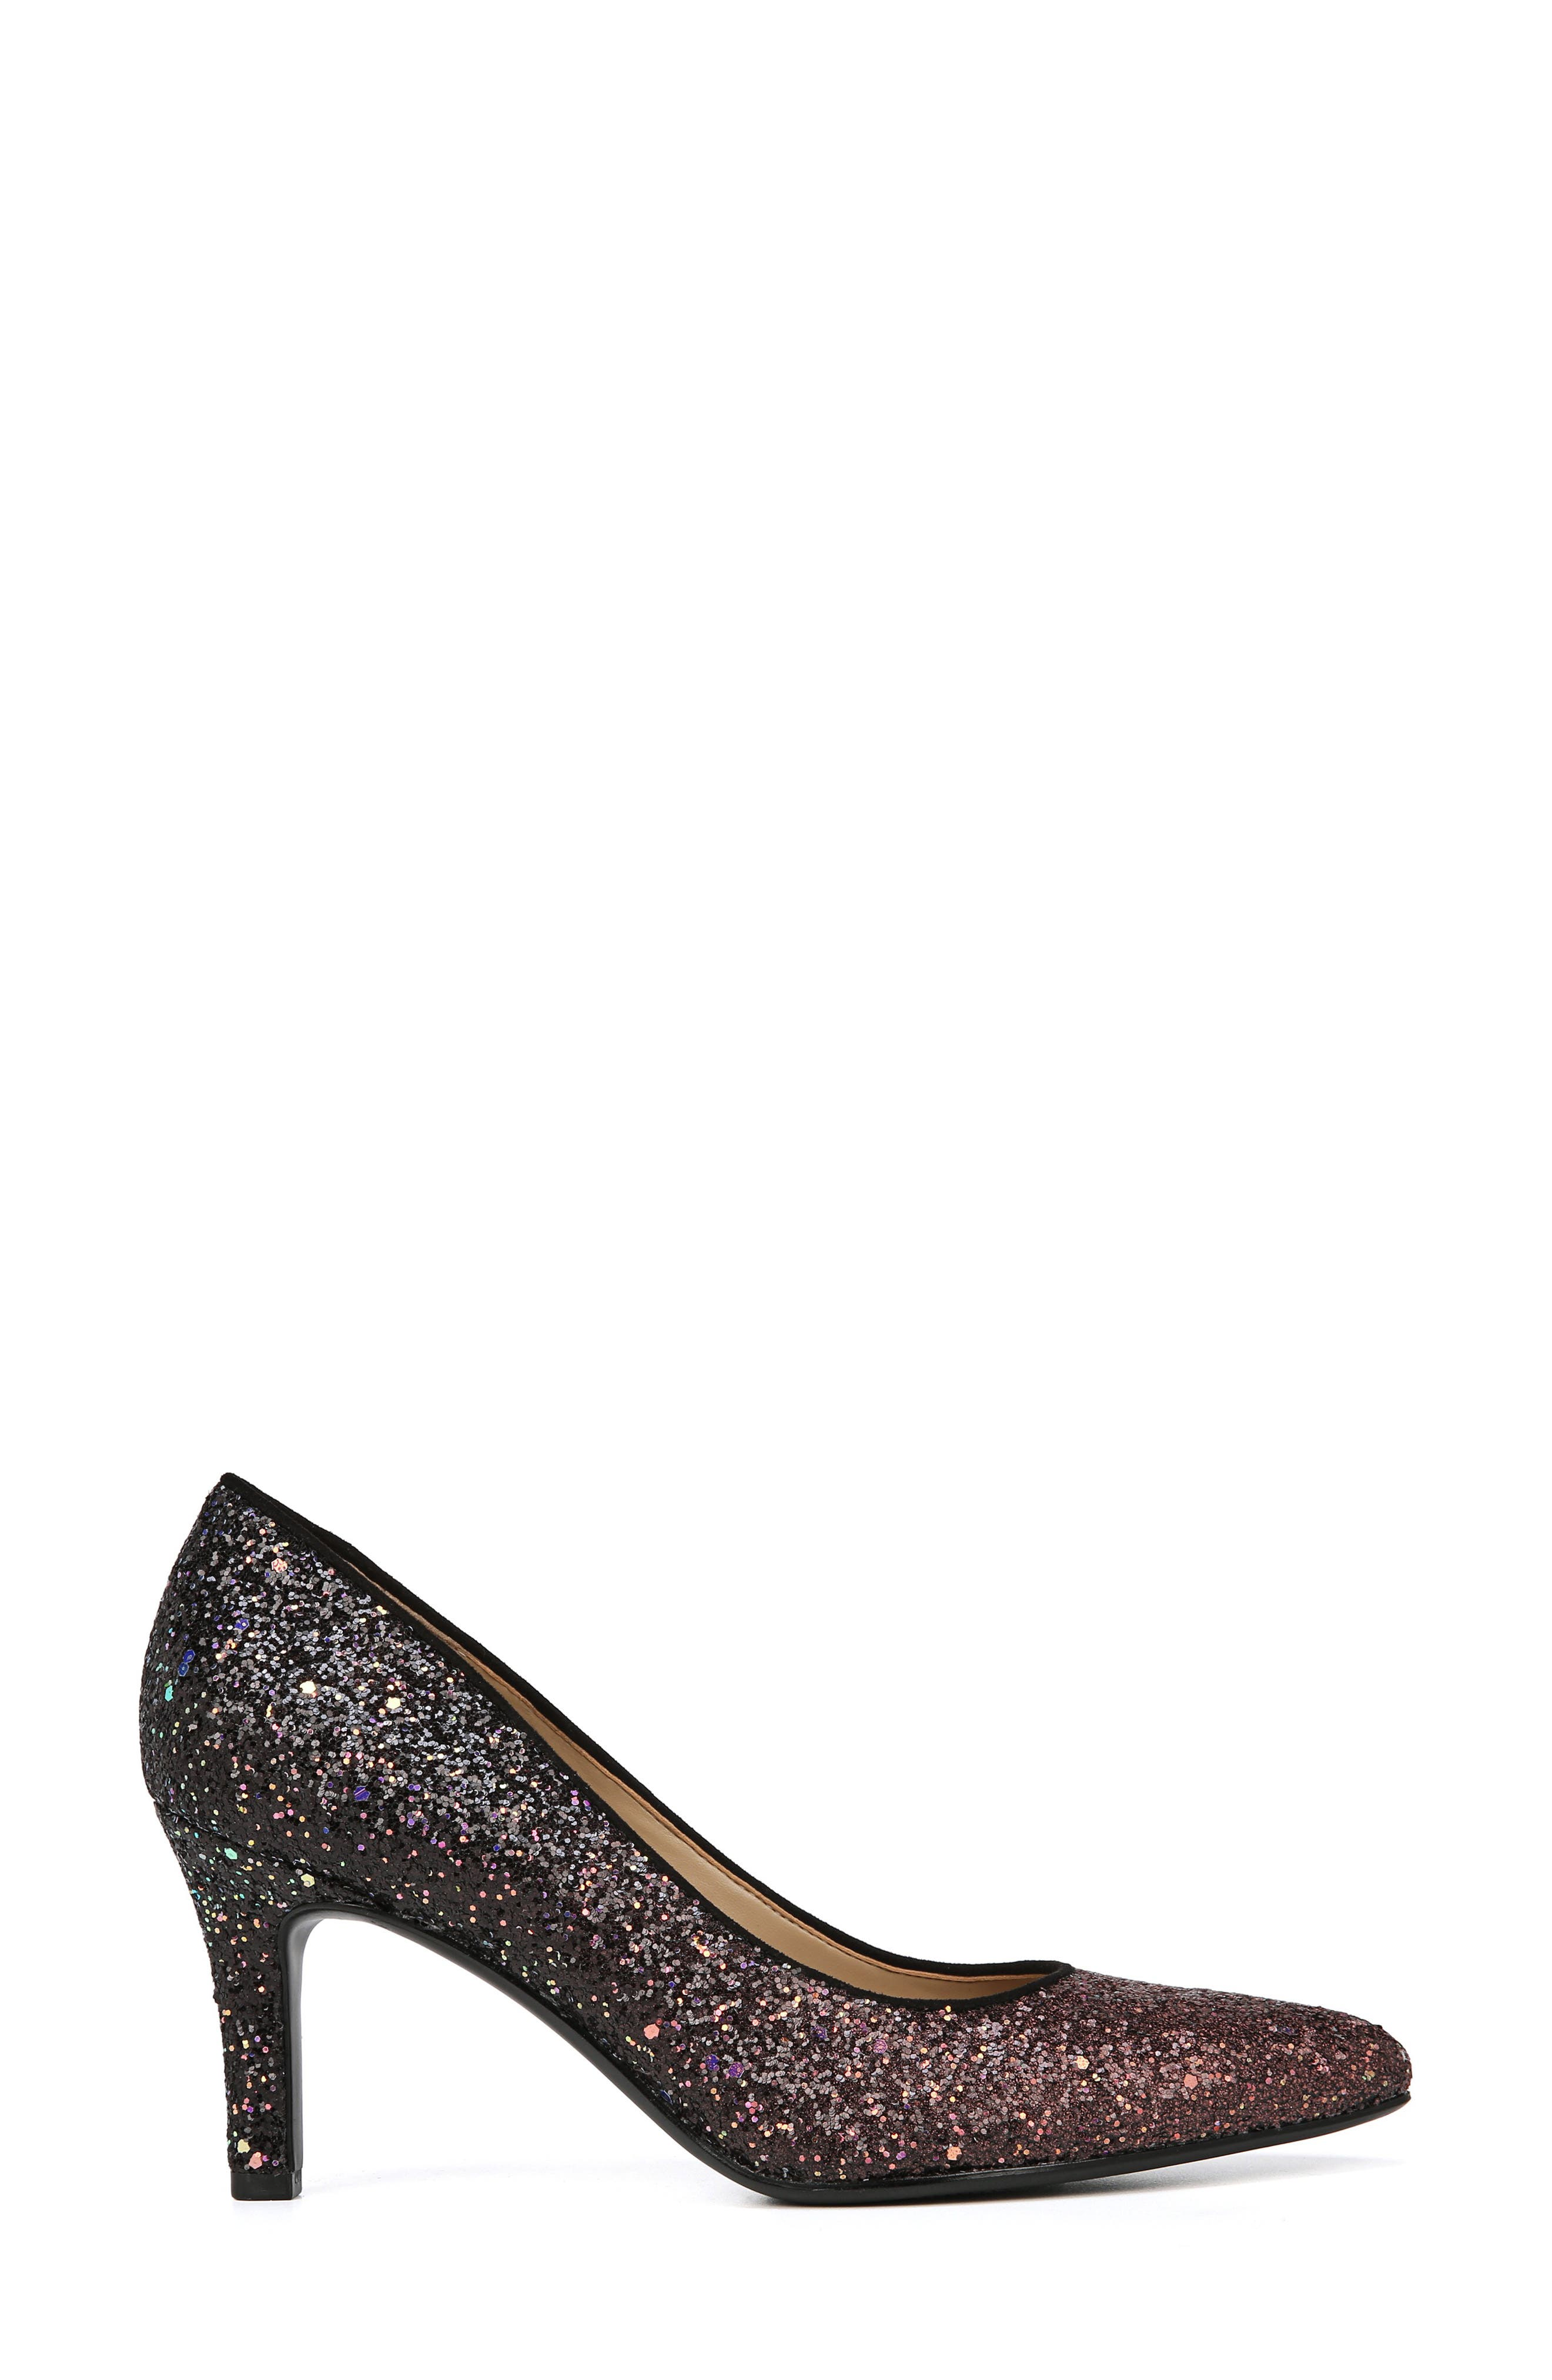 ,                             Natalie Pointy Toe Pump,                             Alternate thumbnail 2, color,                             MULTI GLITTER FABRIC